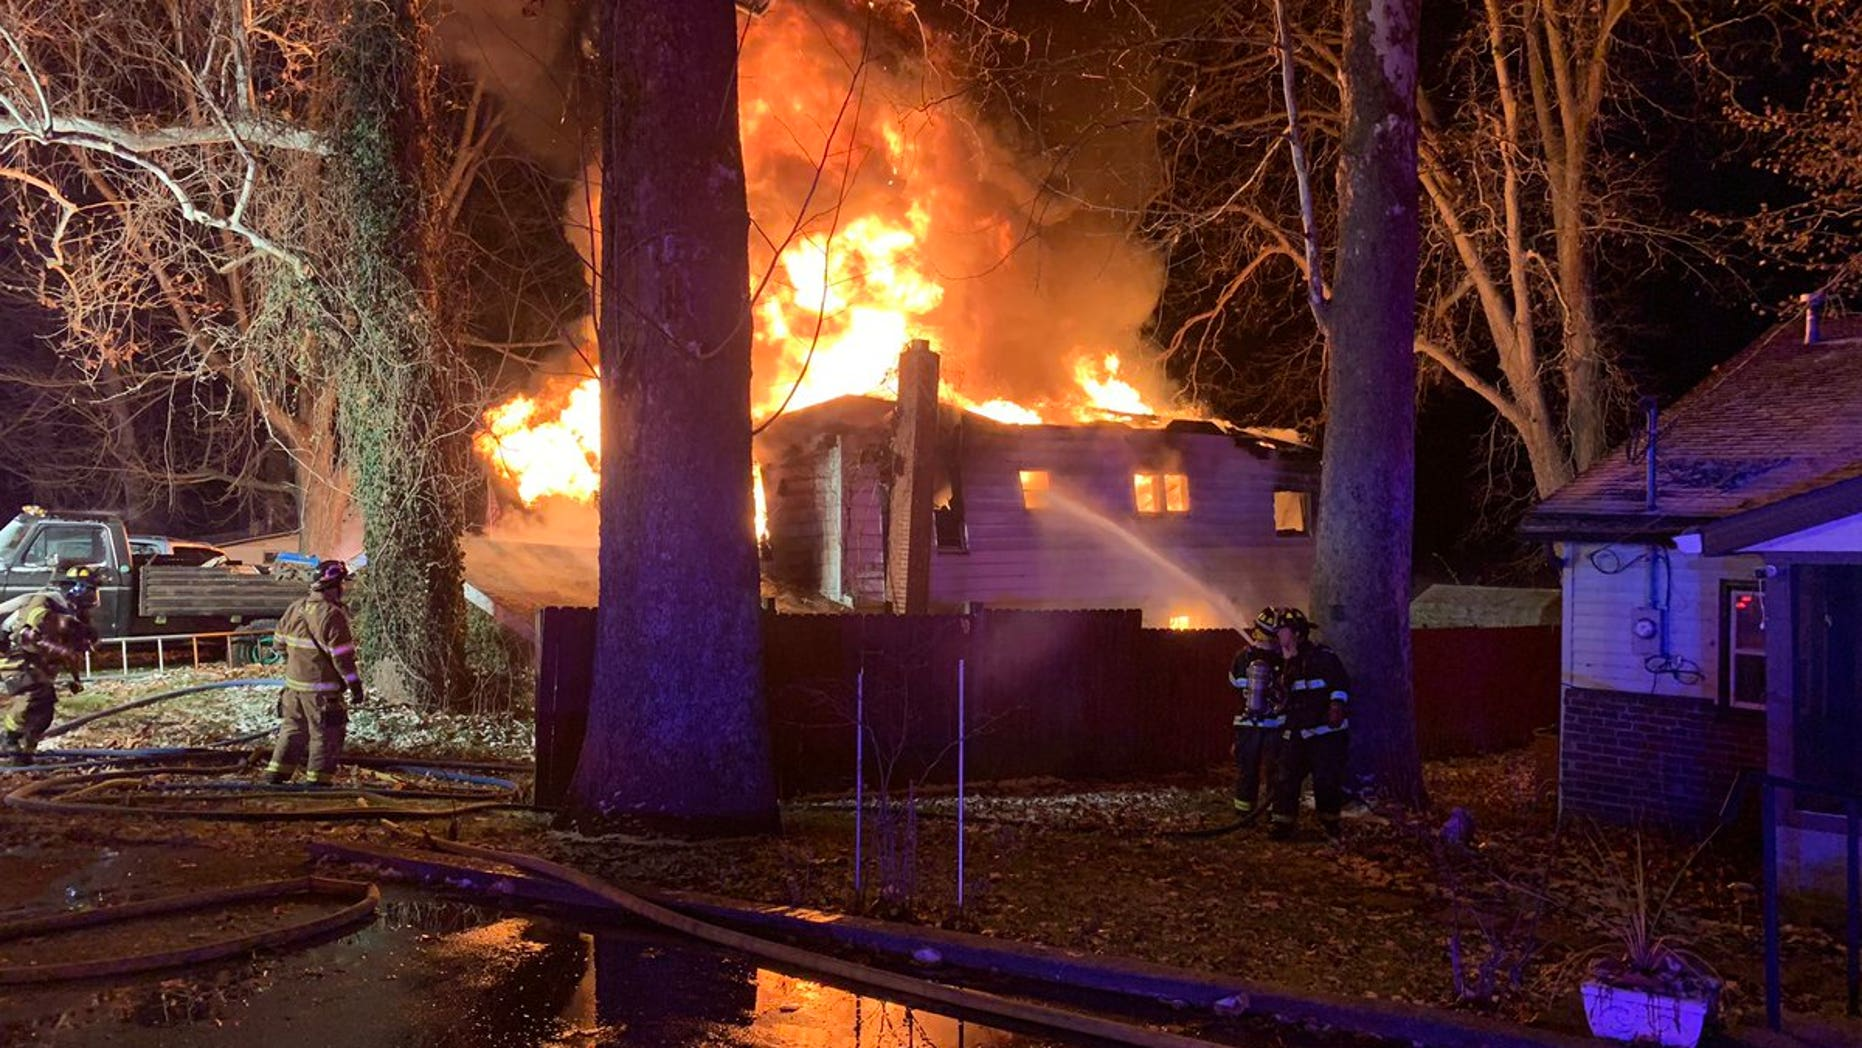 Firefighters respond to an early morning fire in rural Indiana.